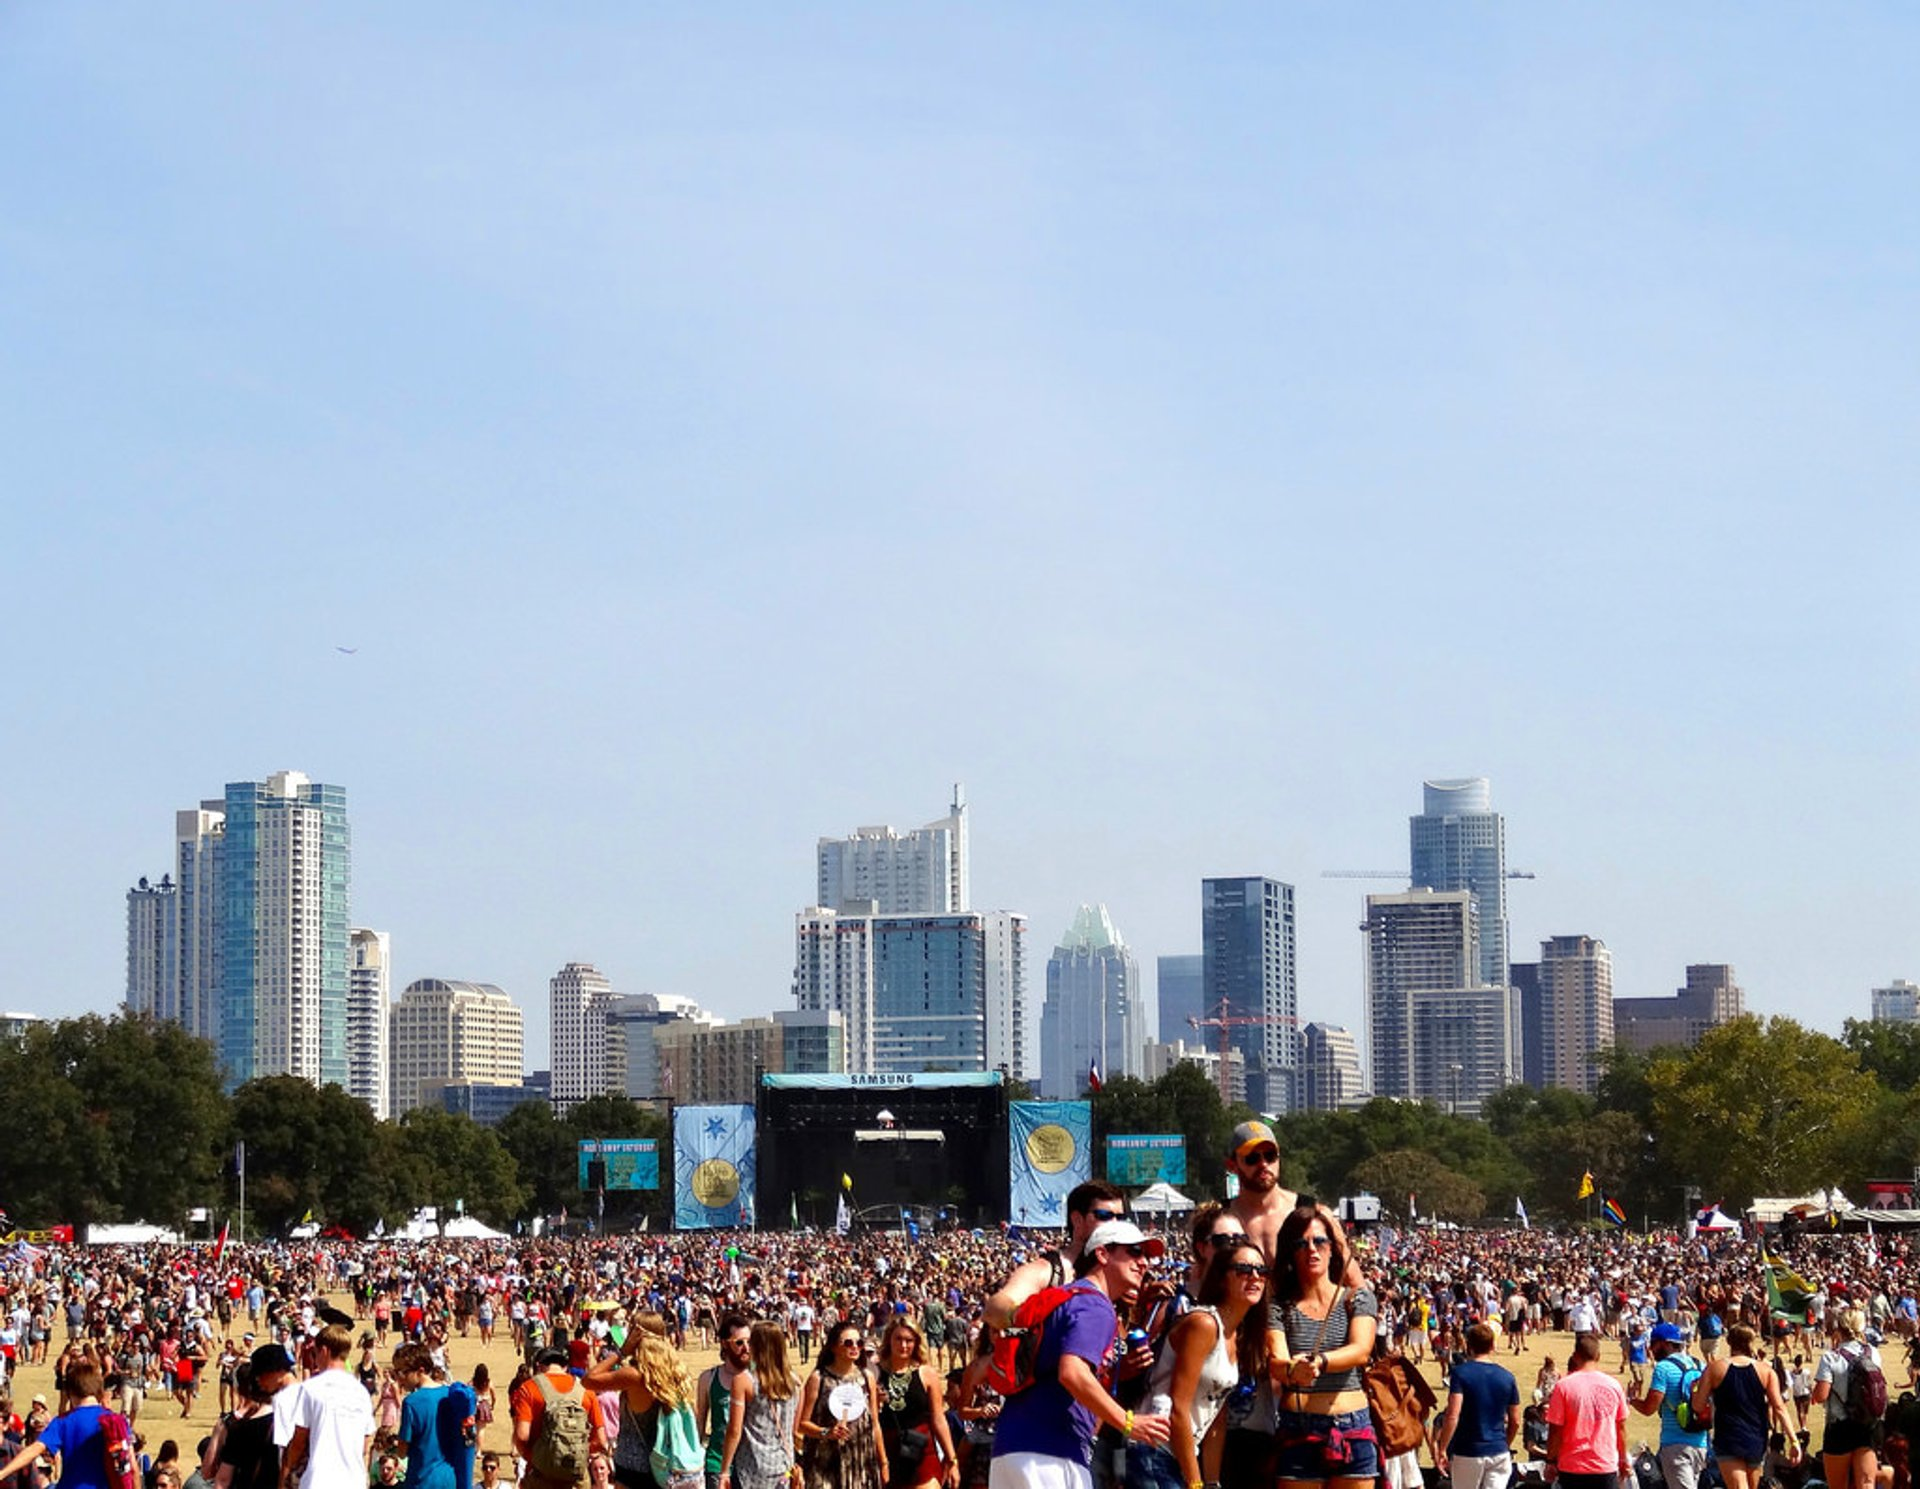 Austin City Limits Music Festival (ACL) in Texas - Best Season 2019